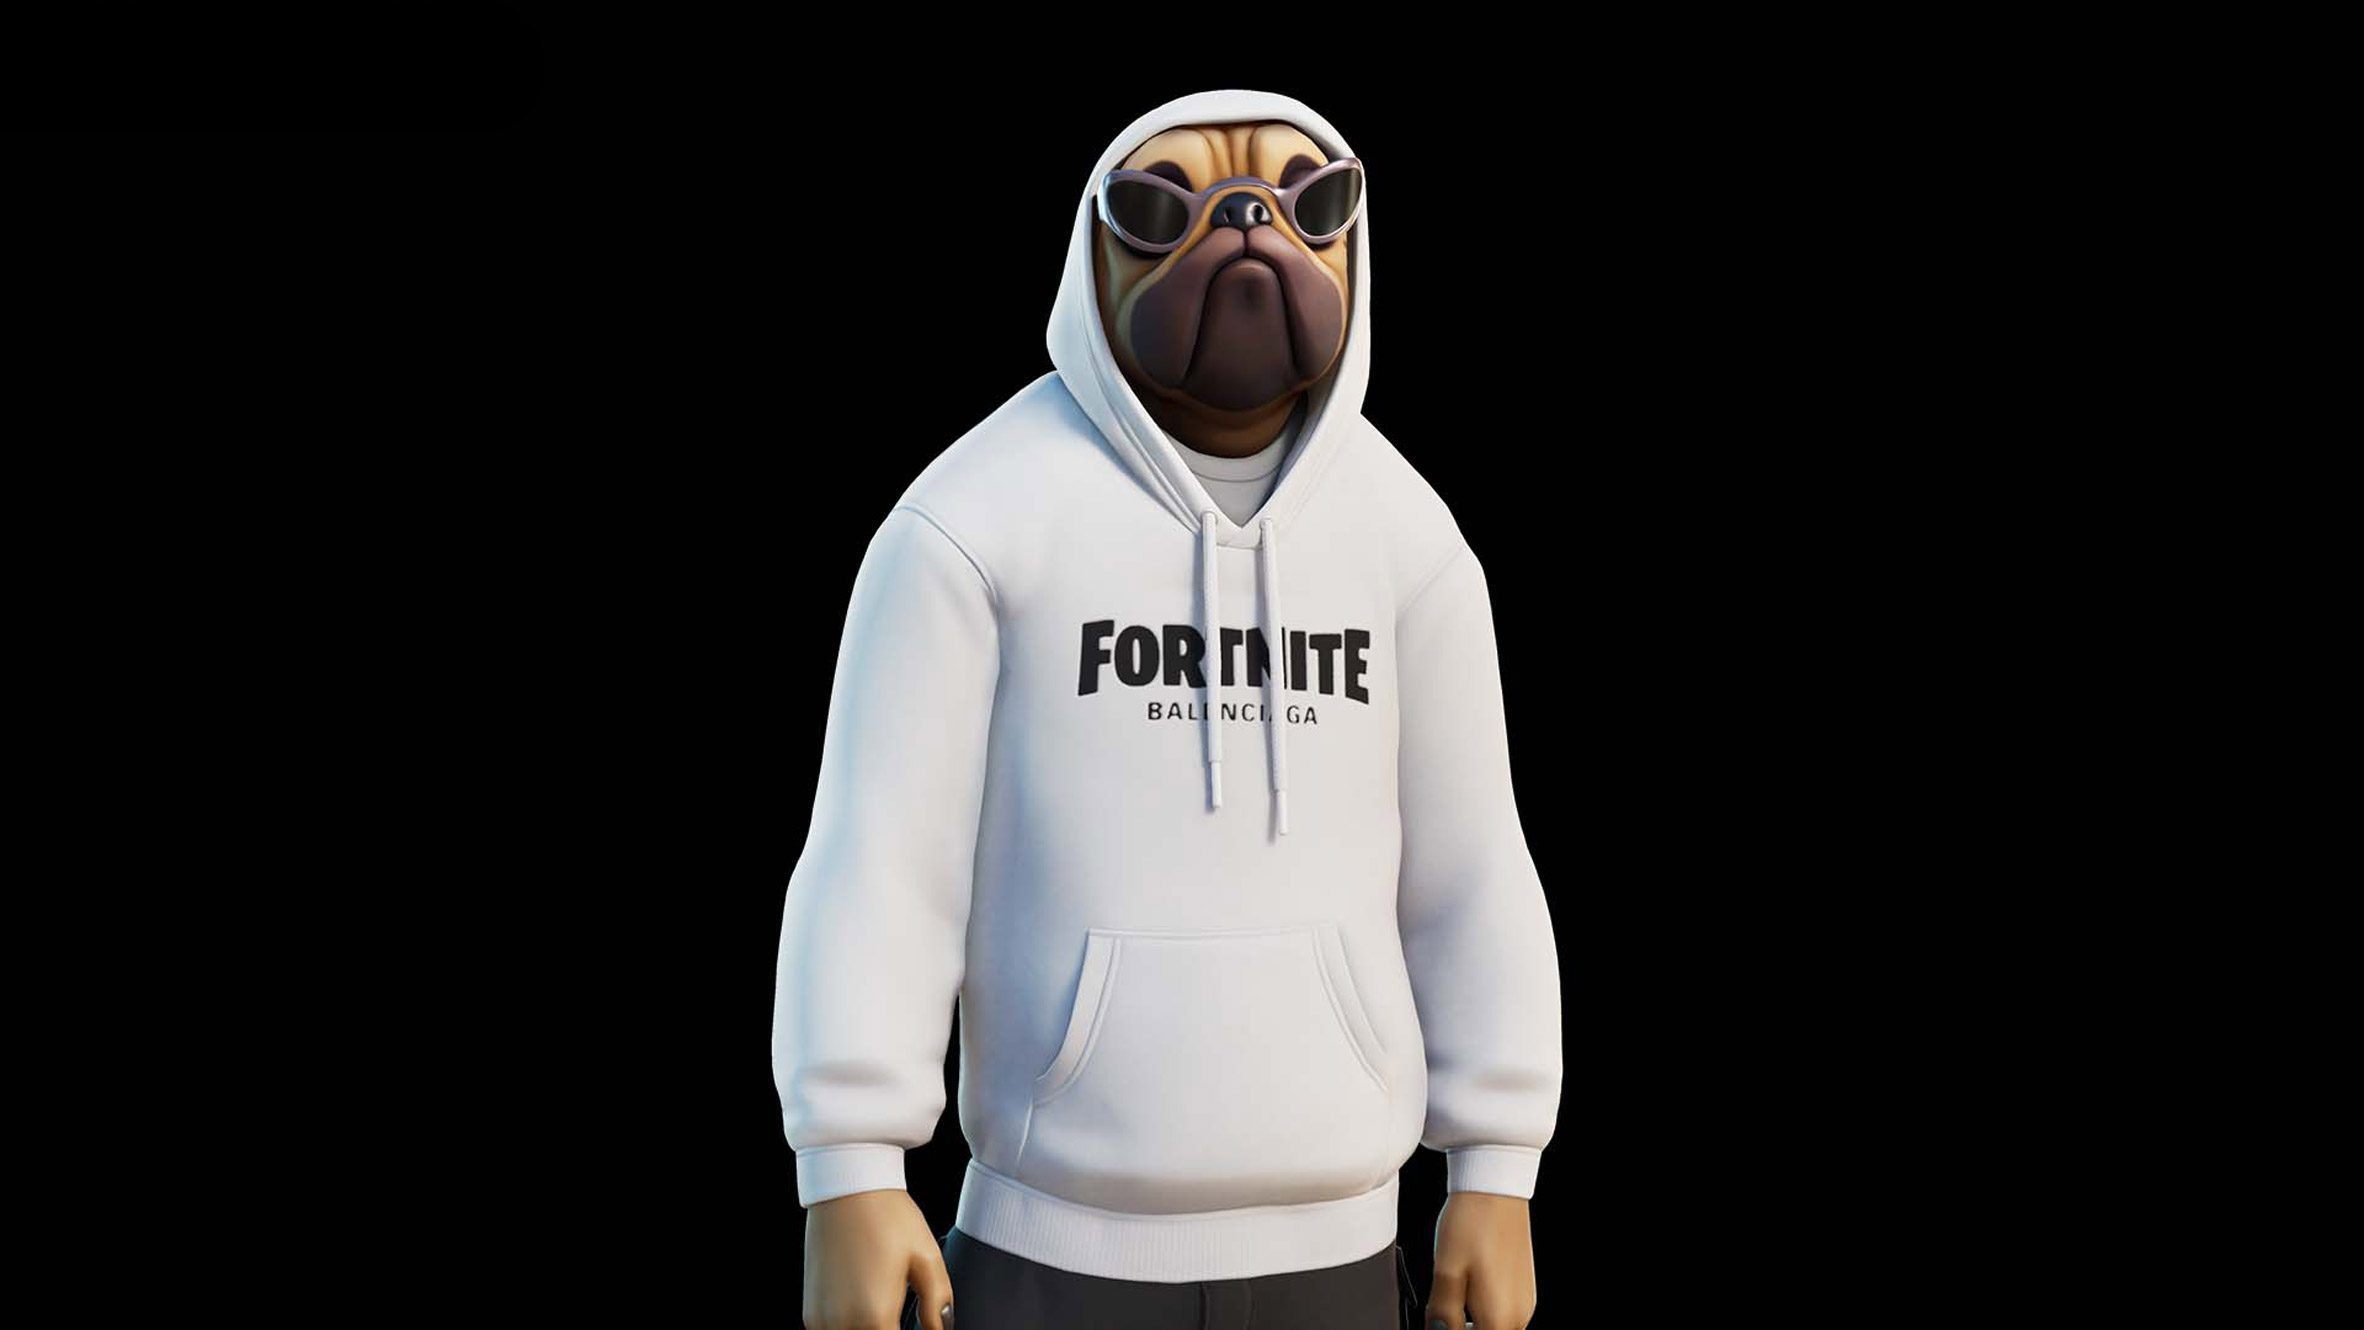 A hoodie with fortnite printed on it